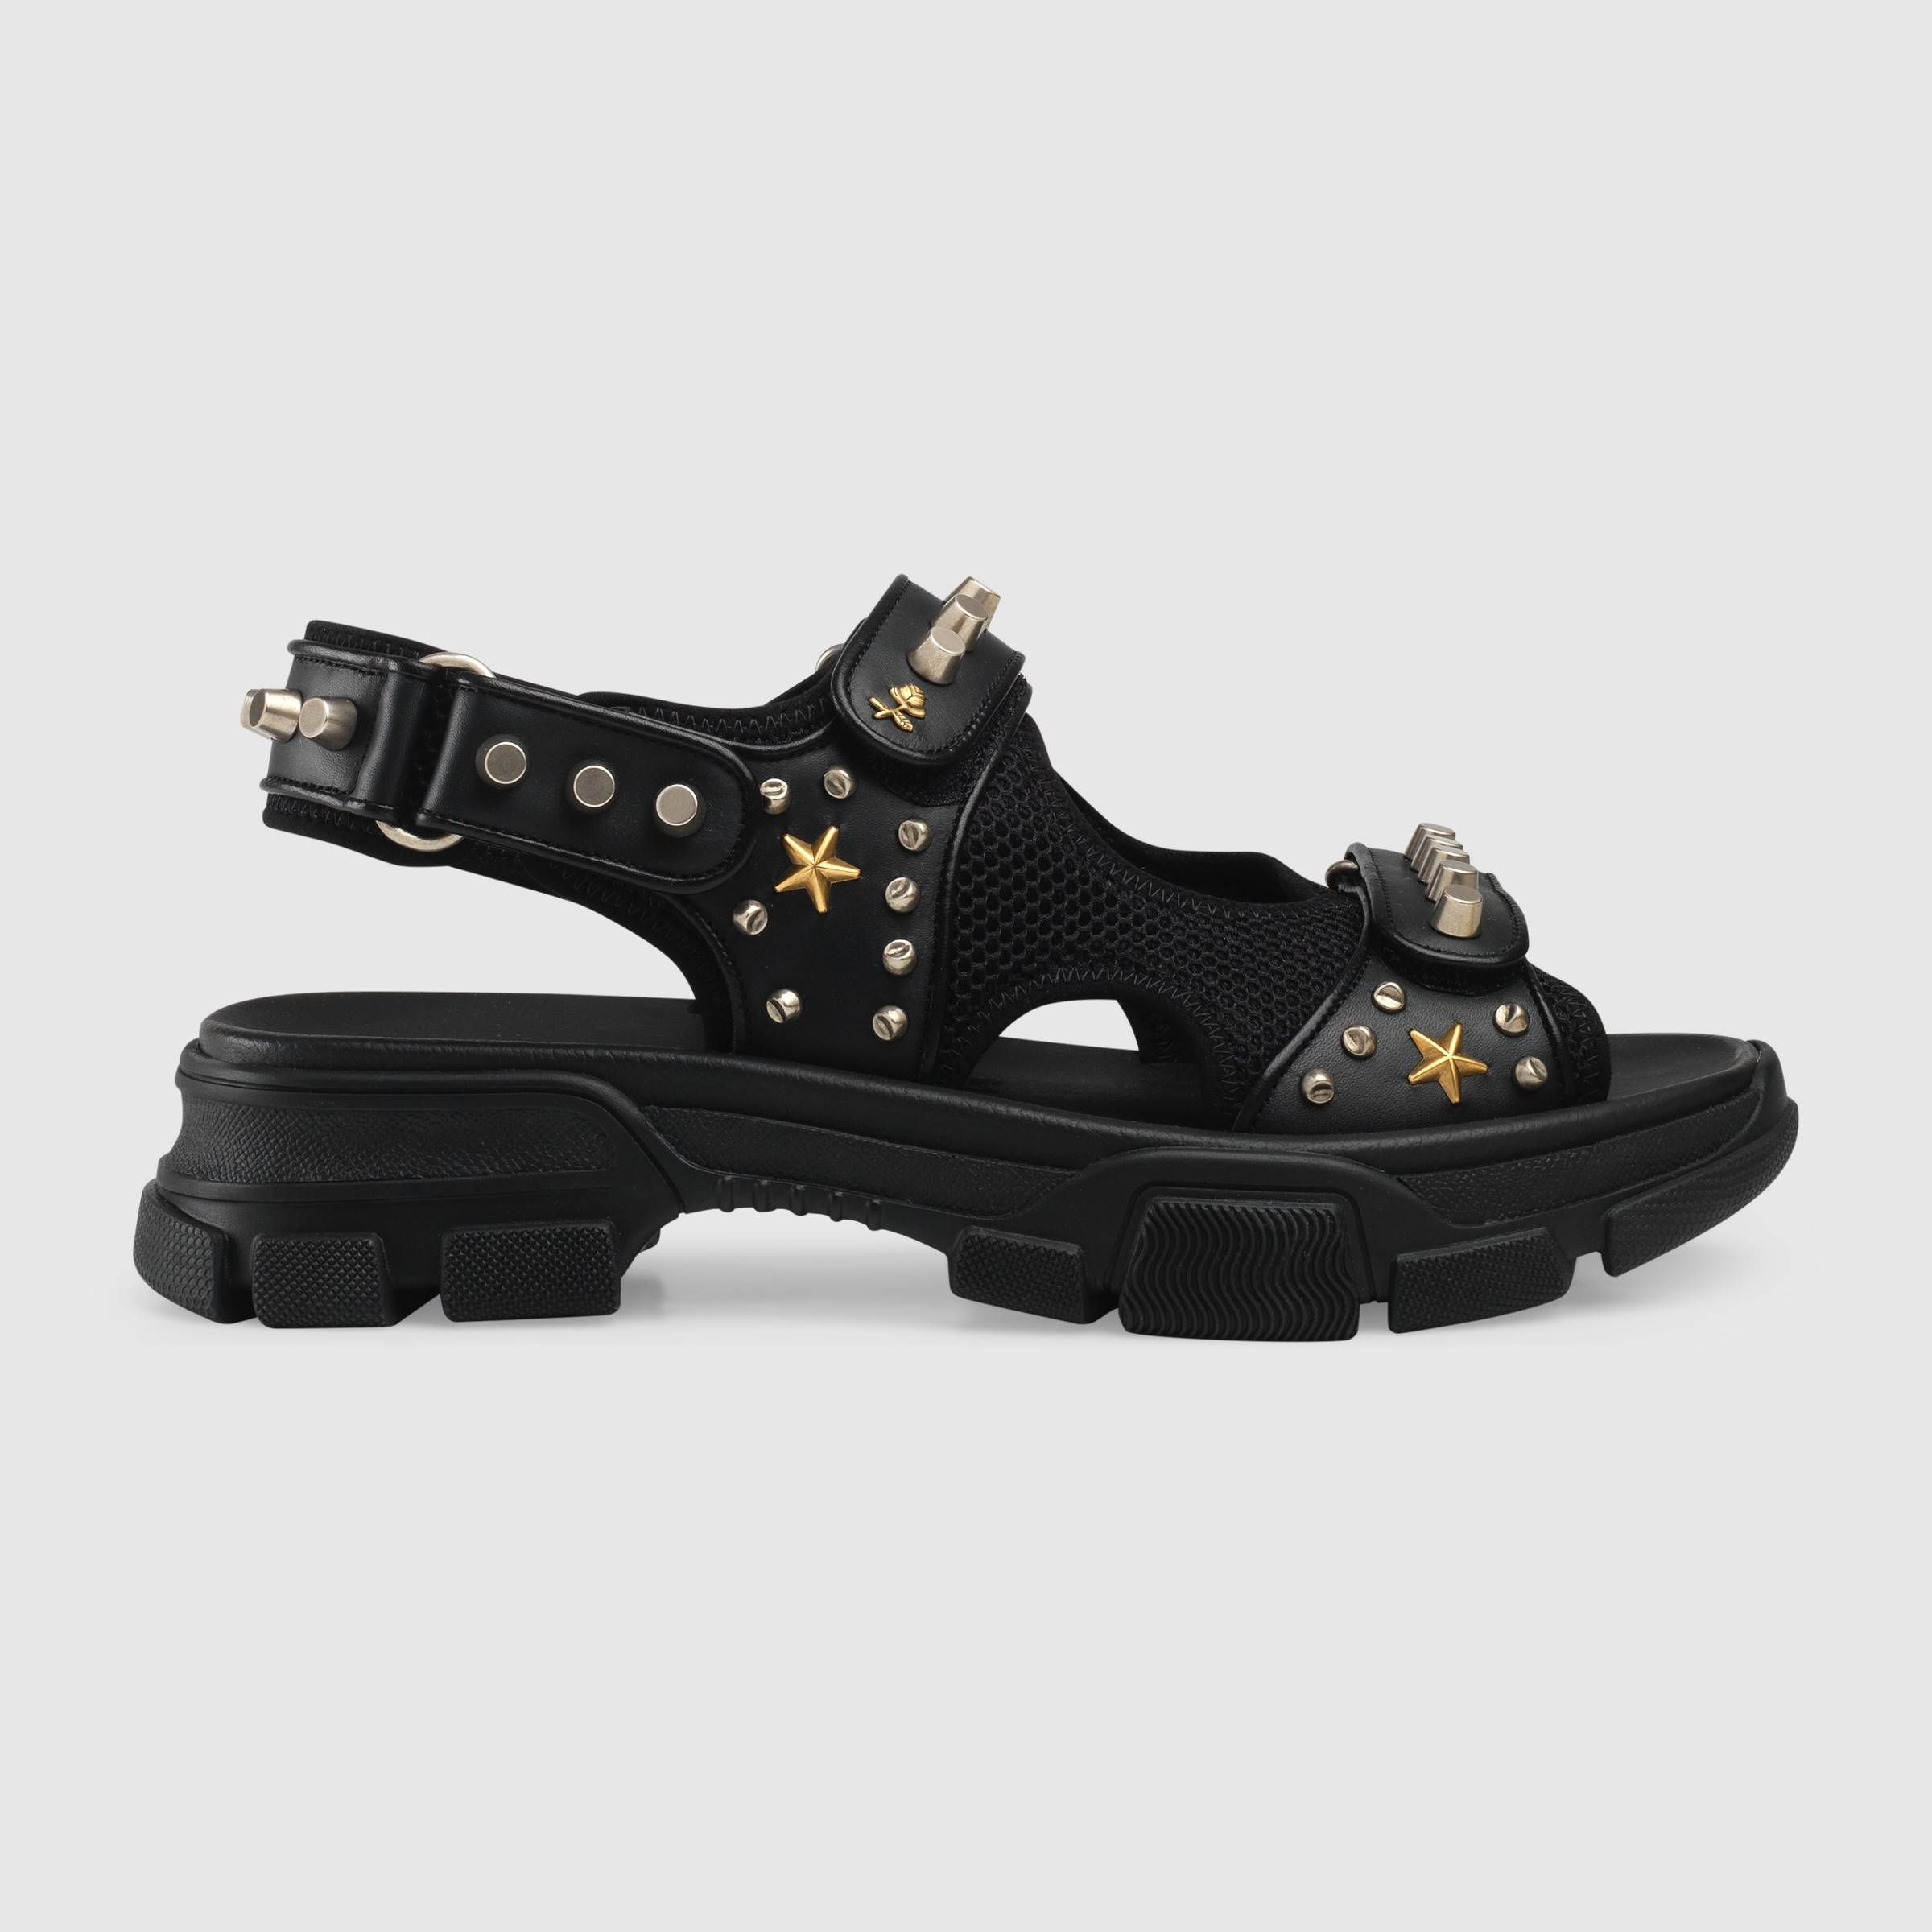 Leather And Mesh Sandal With Studs In Black Leather And Mesh Gucci Men S Shoes Gucci Men Shoes Mens Leather Sandals Studded Sandals